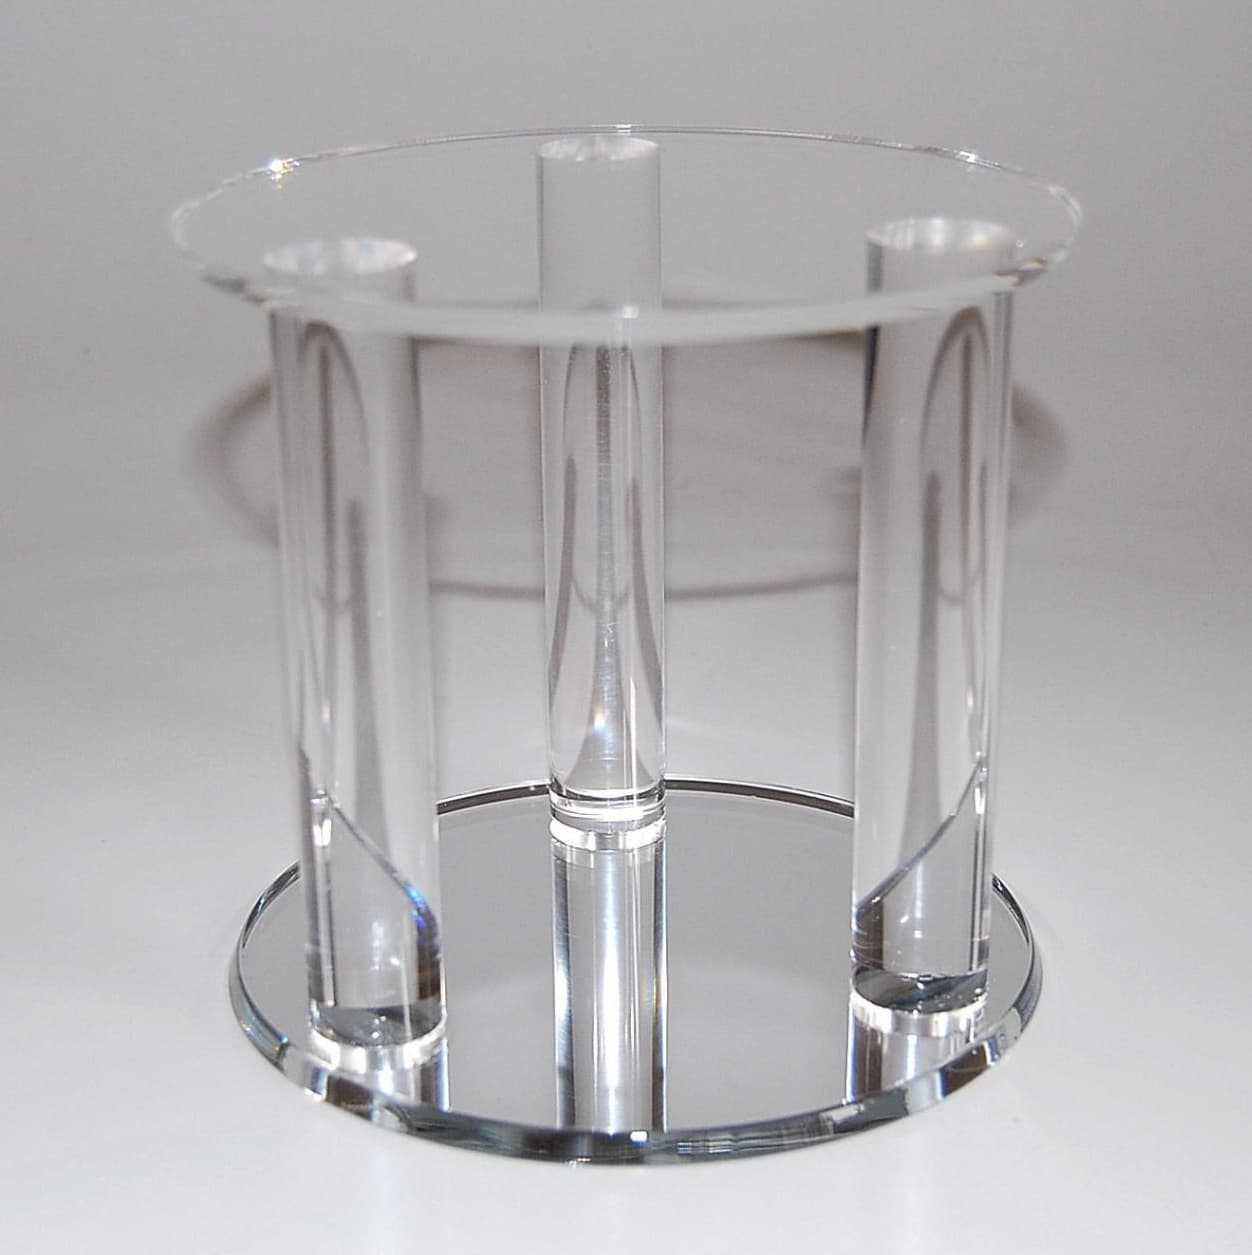 Acrylic Wedding Cake Stand With Acrylic Rod Supports